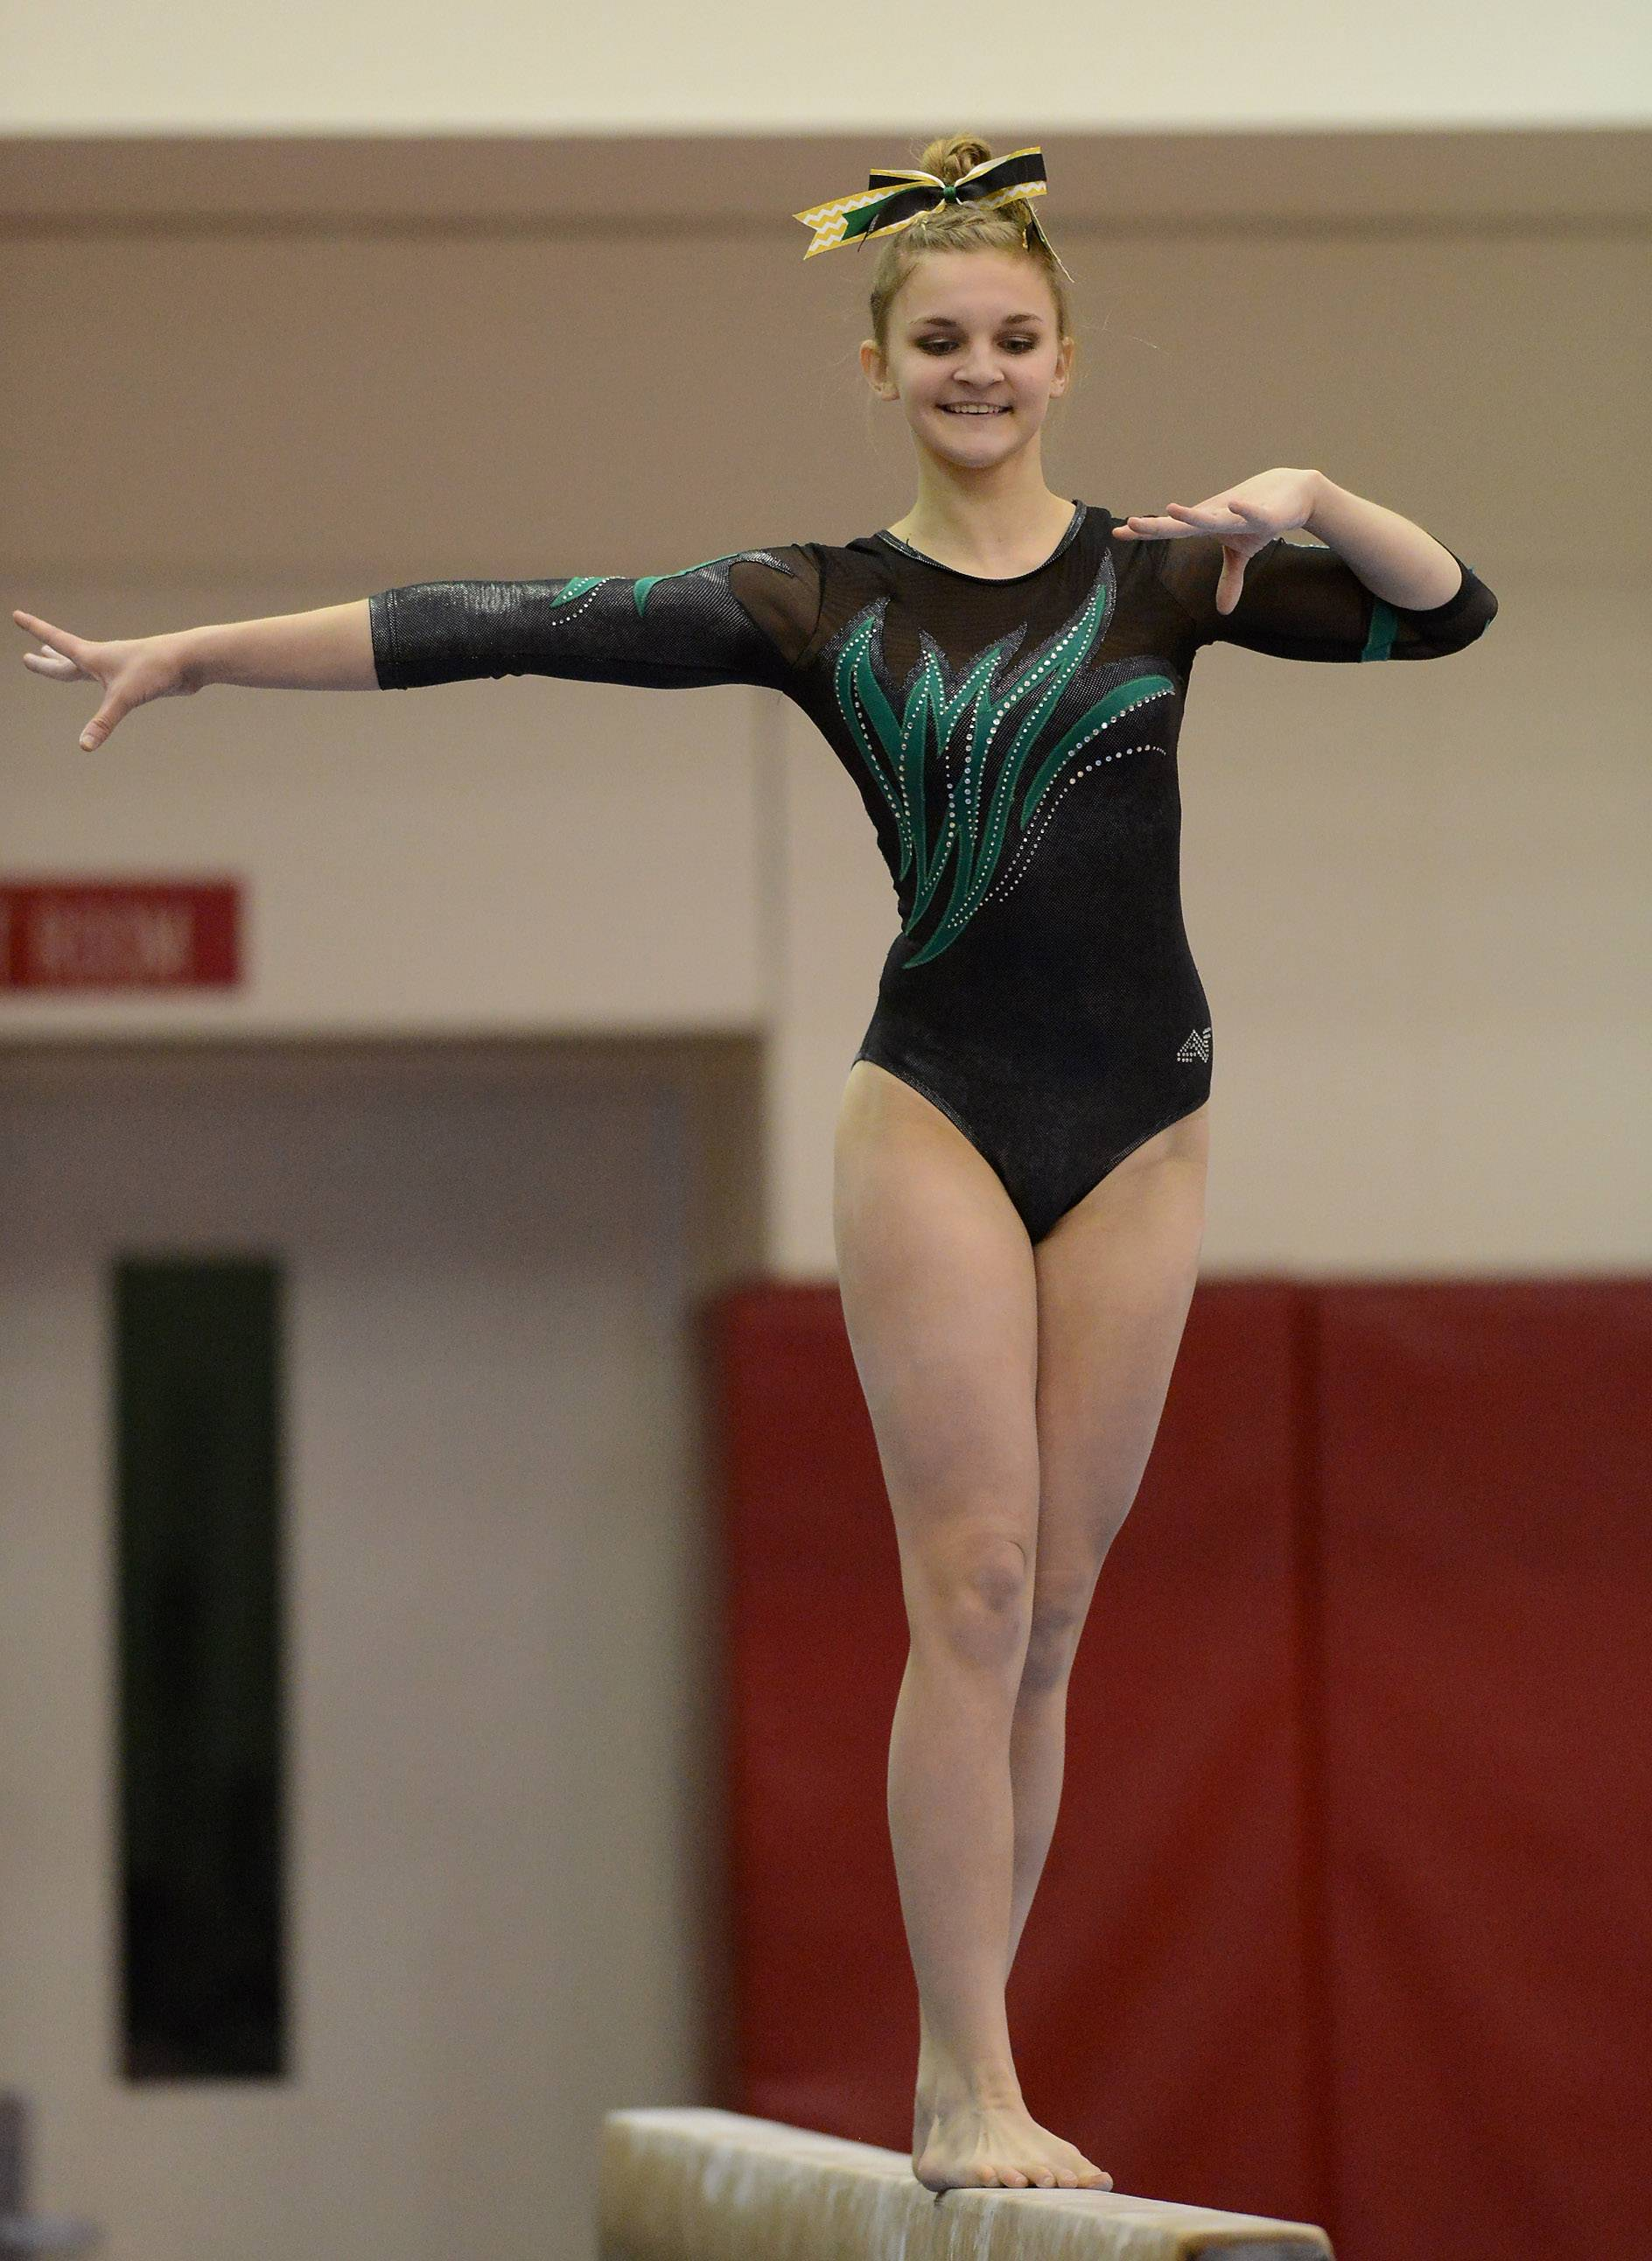 Sydney Plichta of Fremd finishes sixth on the balance beam during the girls gymnastics state finals at Palatine on Saturday.